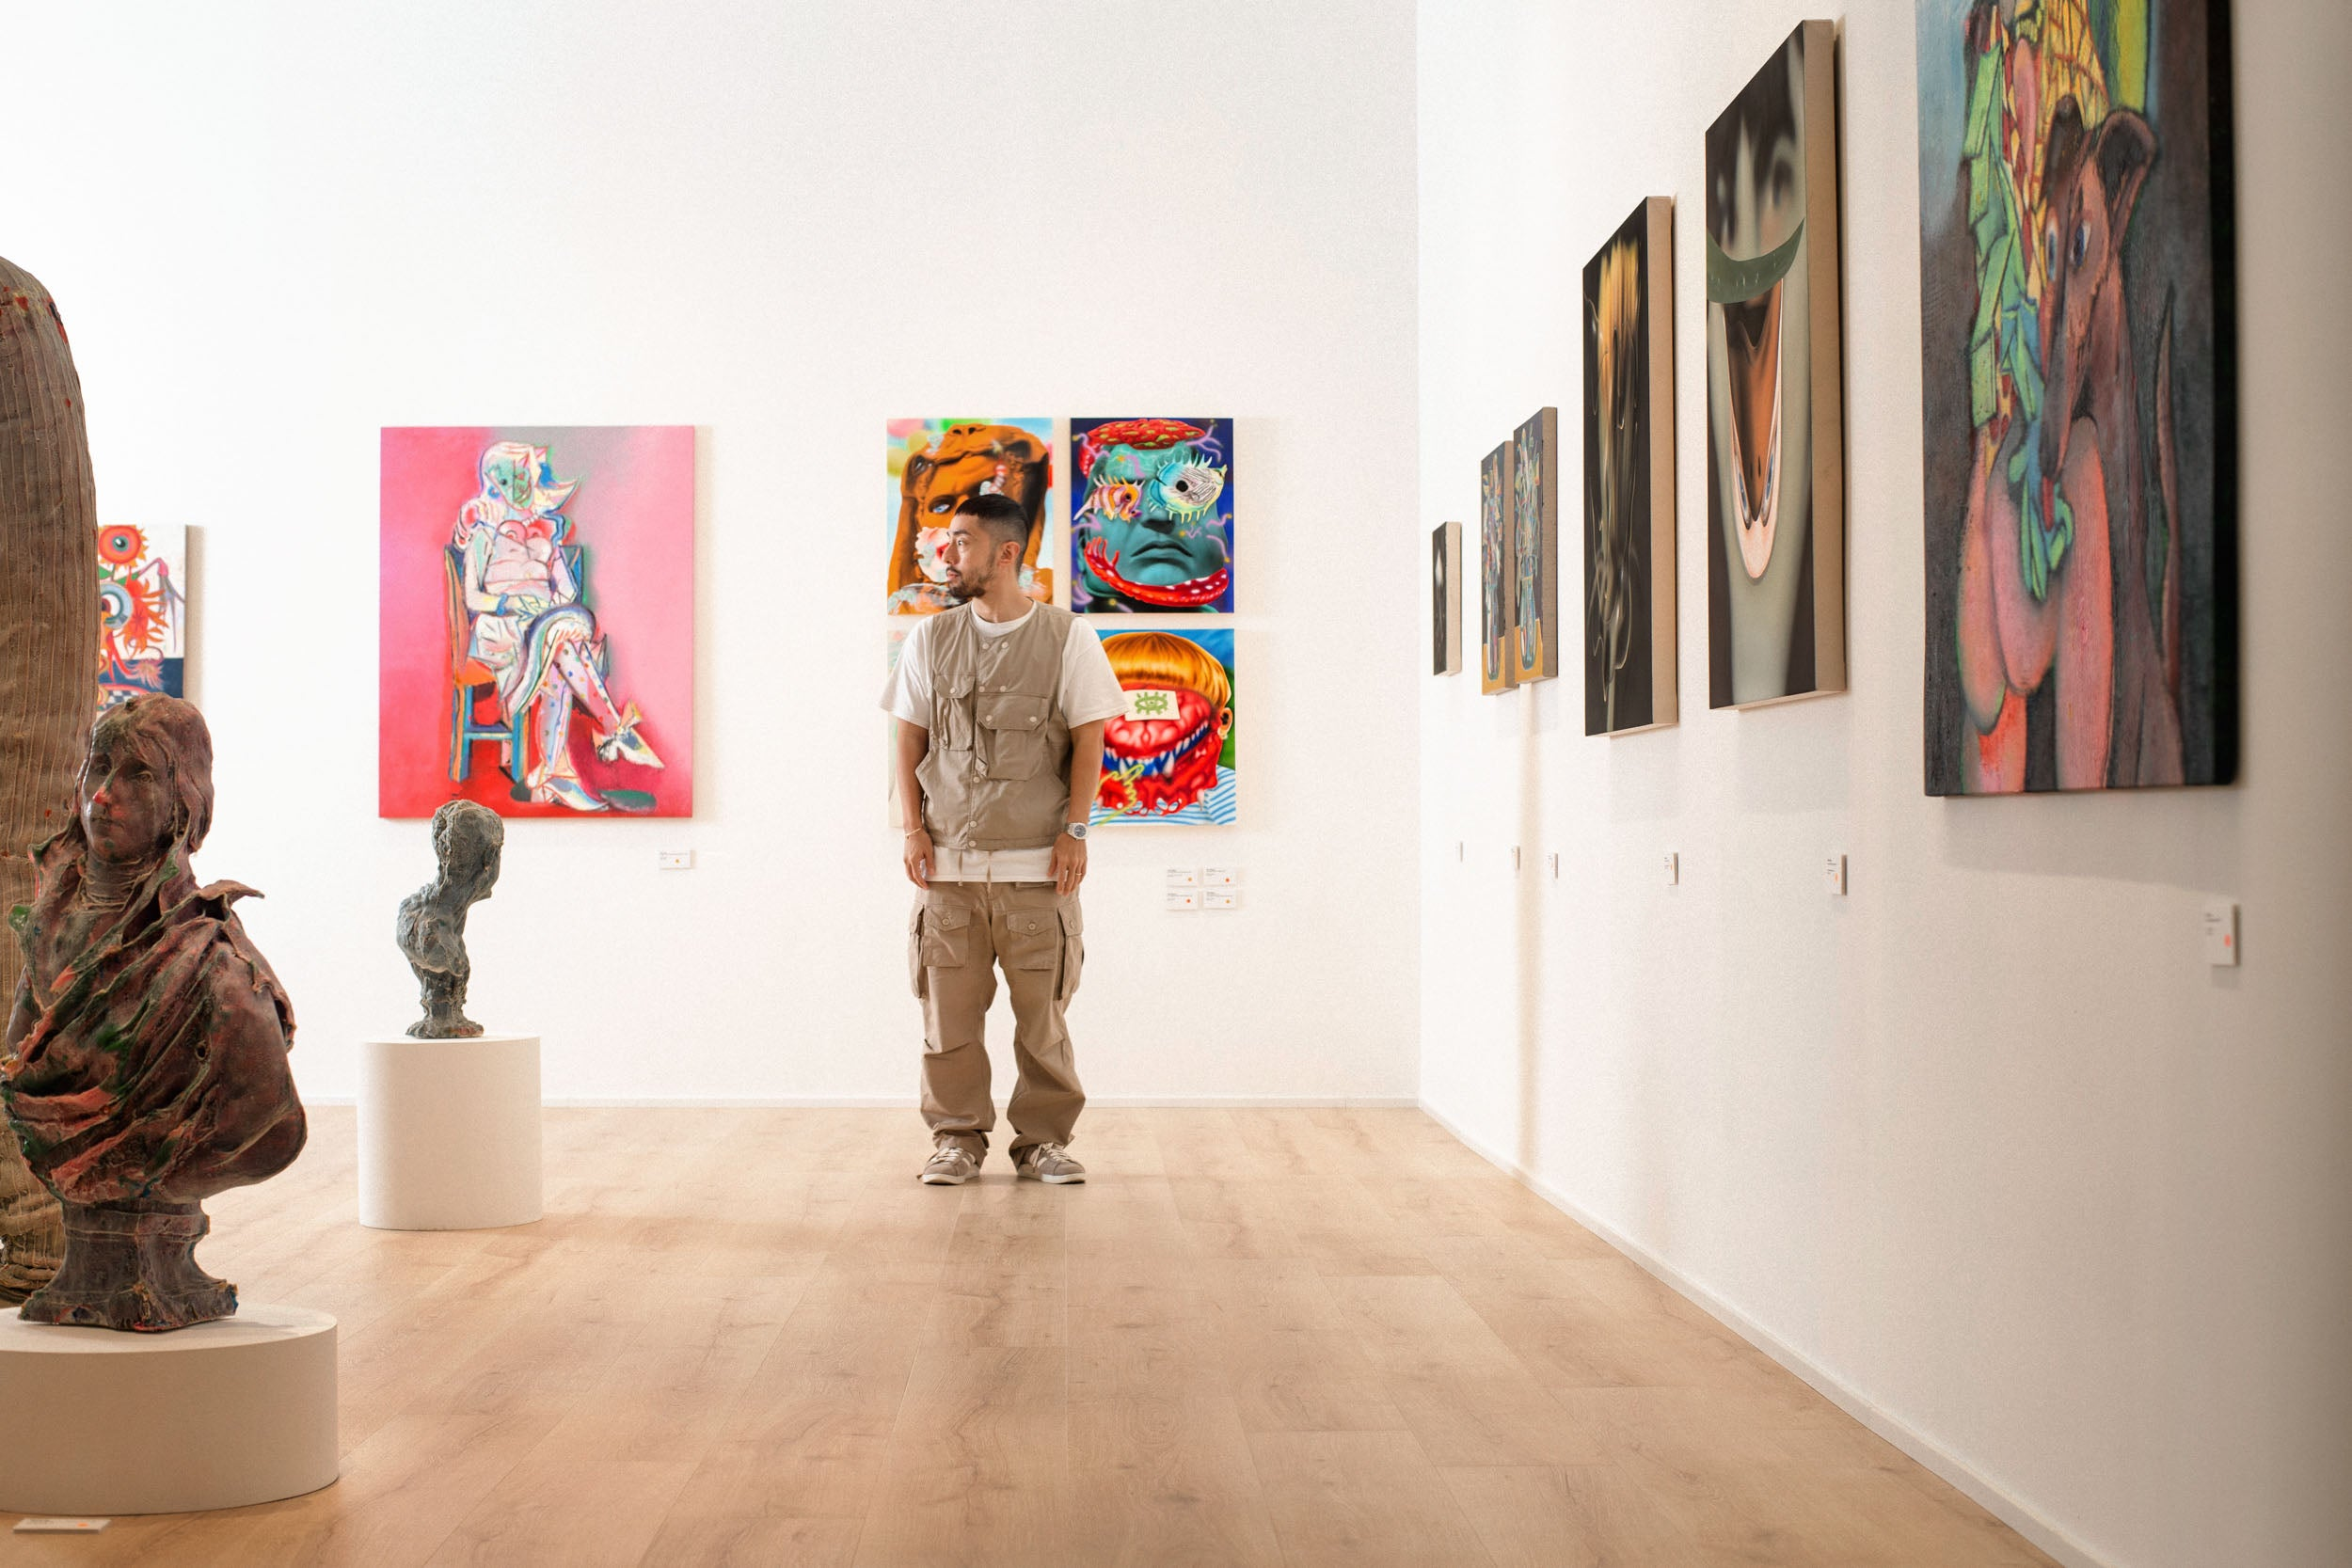 Poon stood in gallery at a distance in Obsessions: Contemporary Culture with Kevin Poon for A Collected Man London